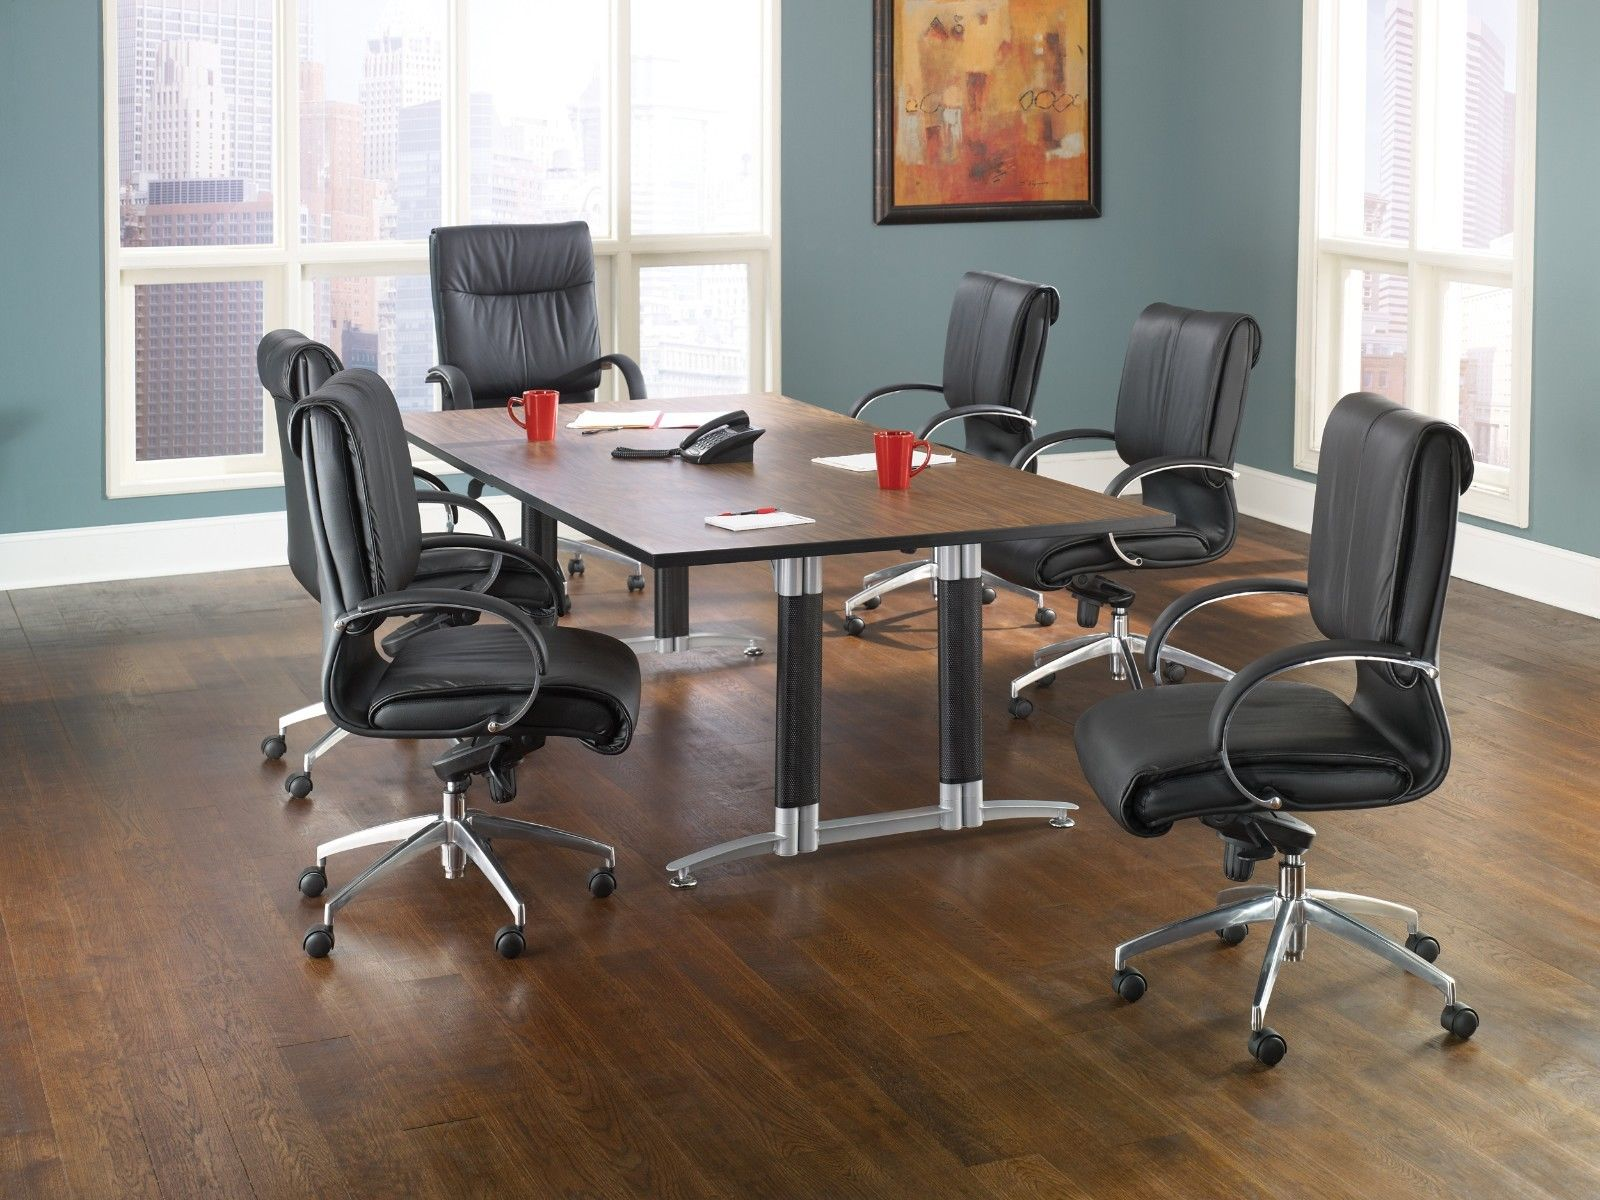 "#3 - 48"" x 96"" Conference Table Mesh Base High-Pressure Laminate Surface Oak Finish"